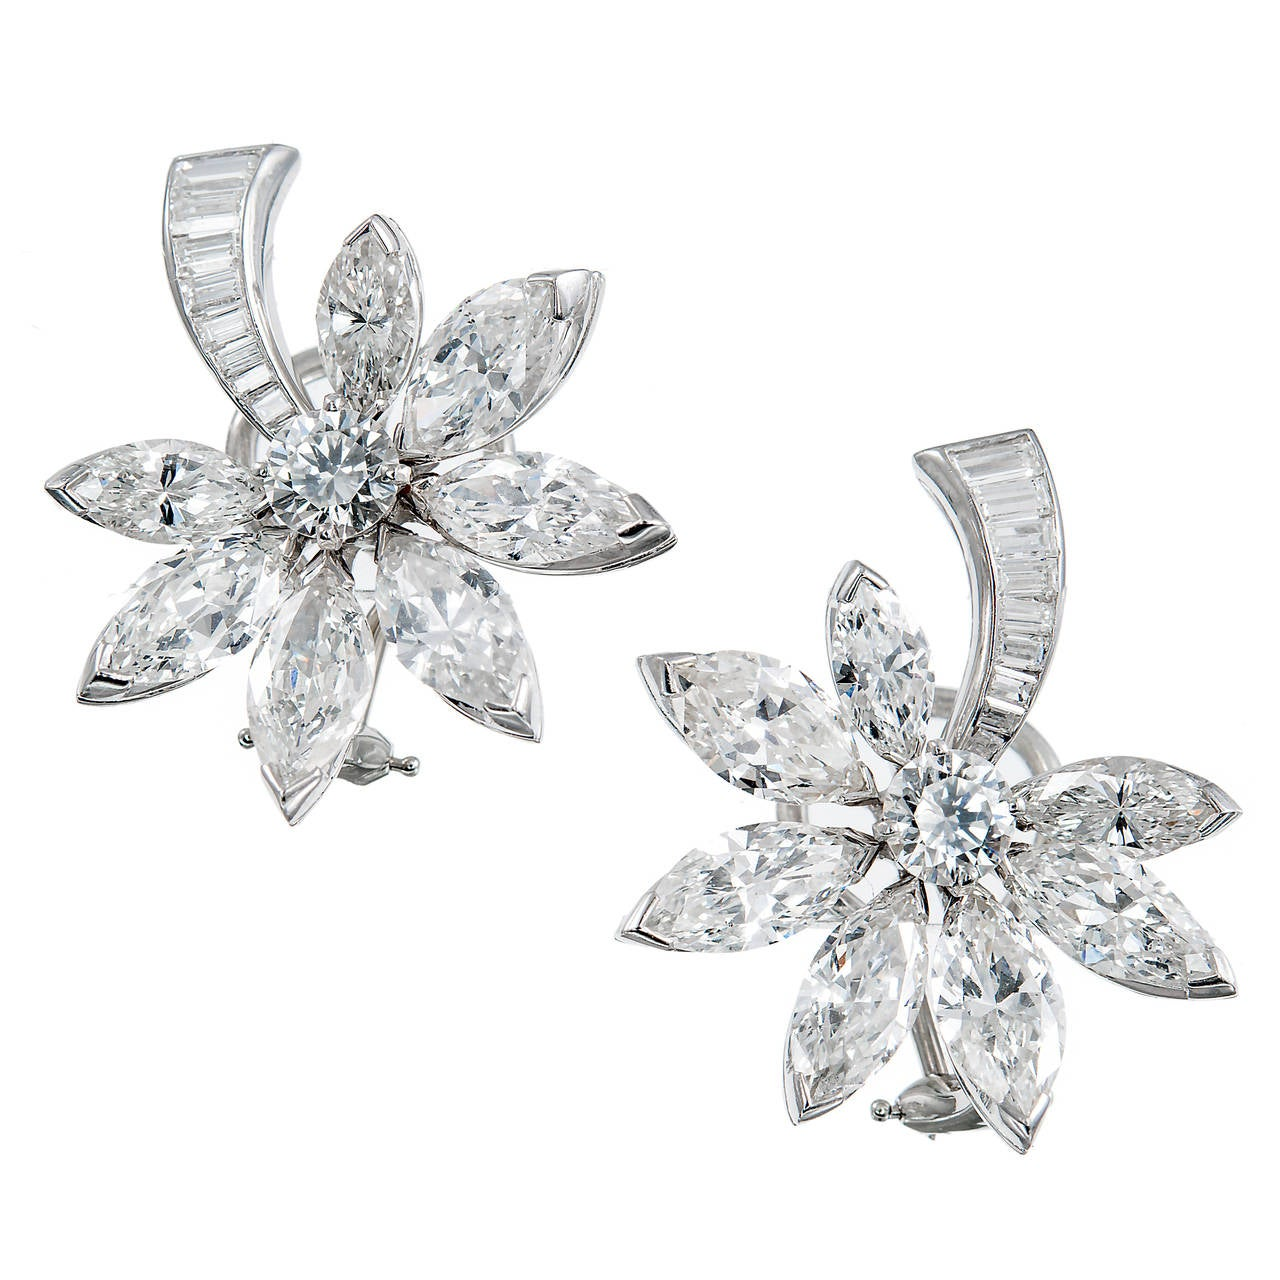 1950s Diamond Platinum Fireworks or Comet Earrings